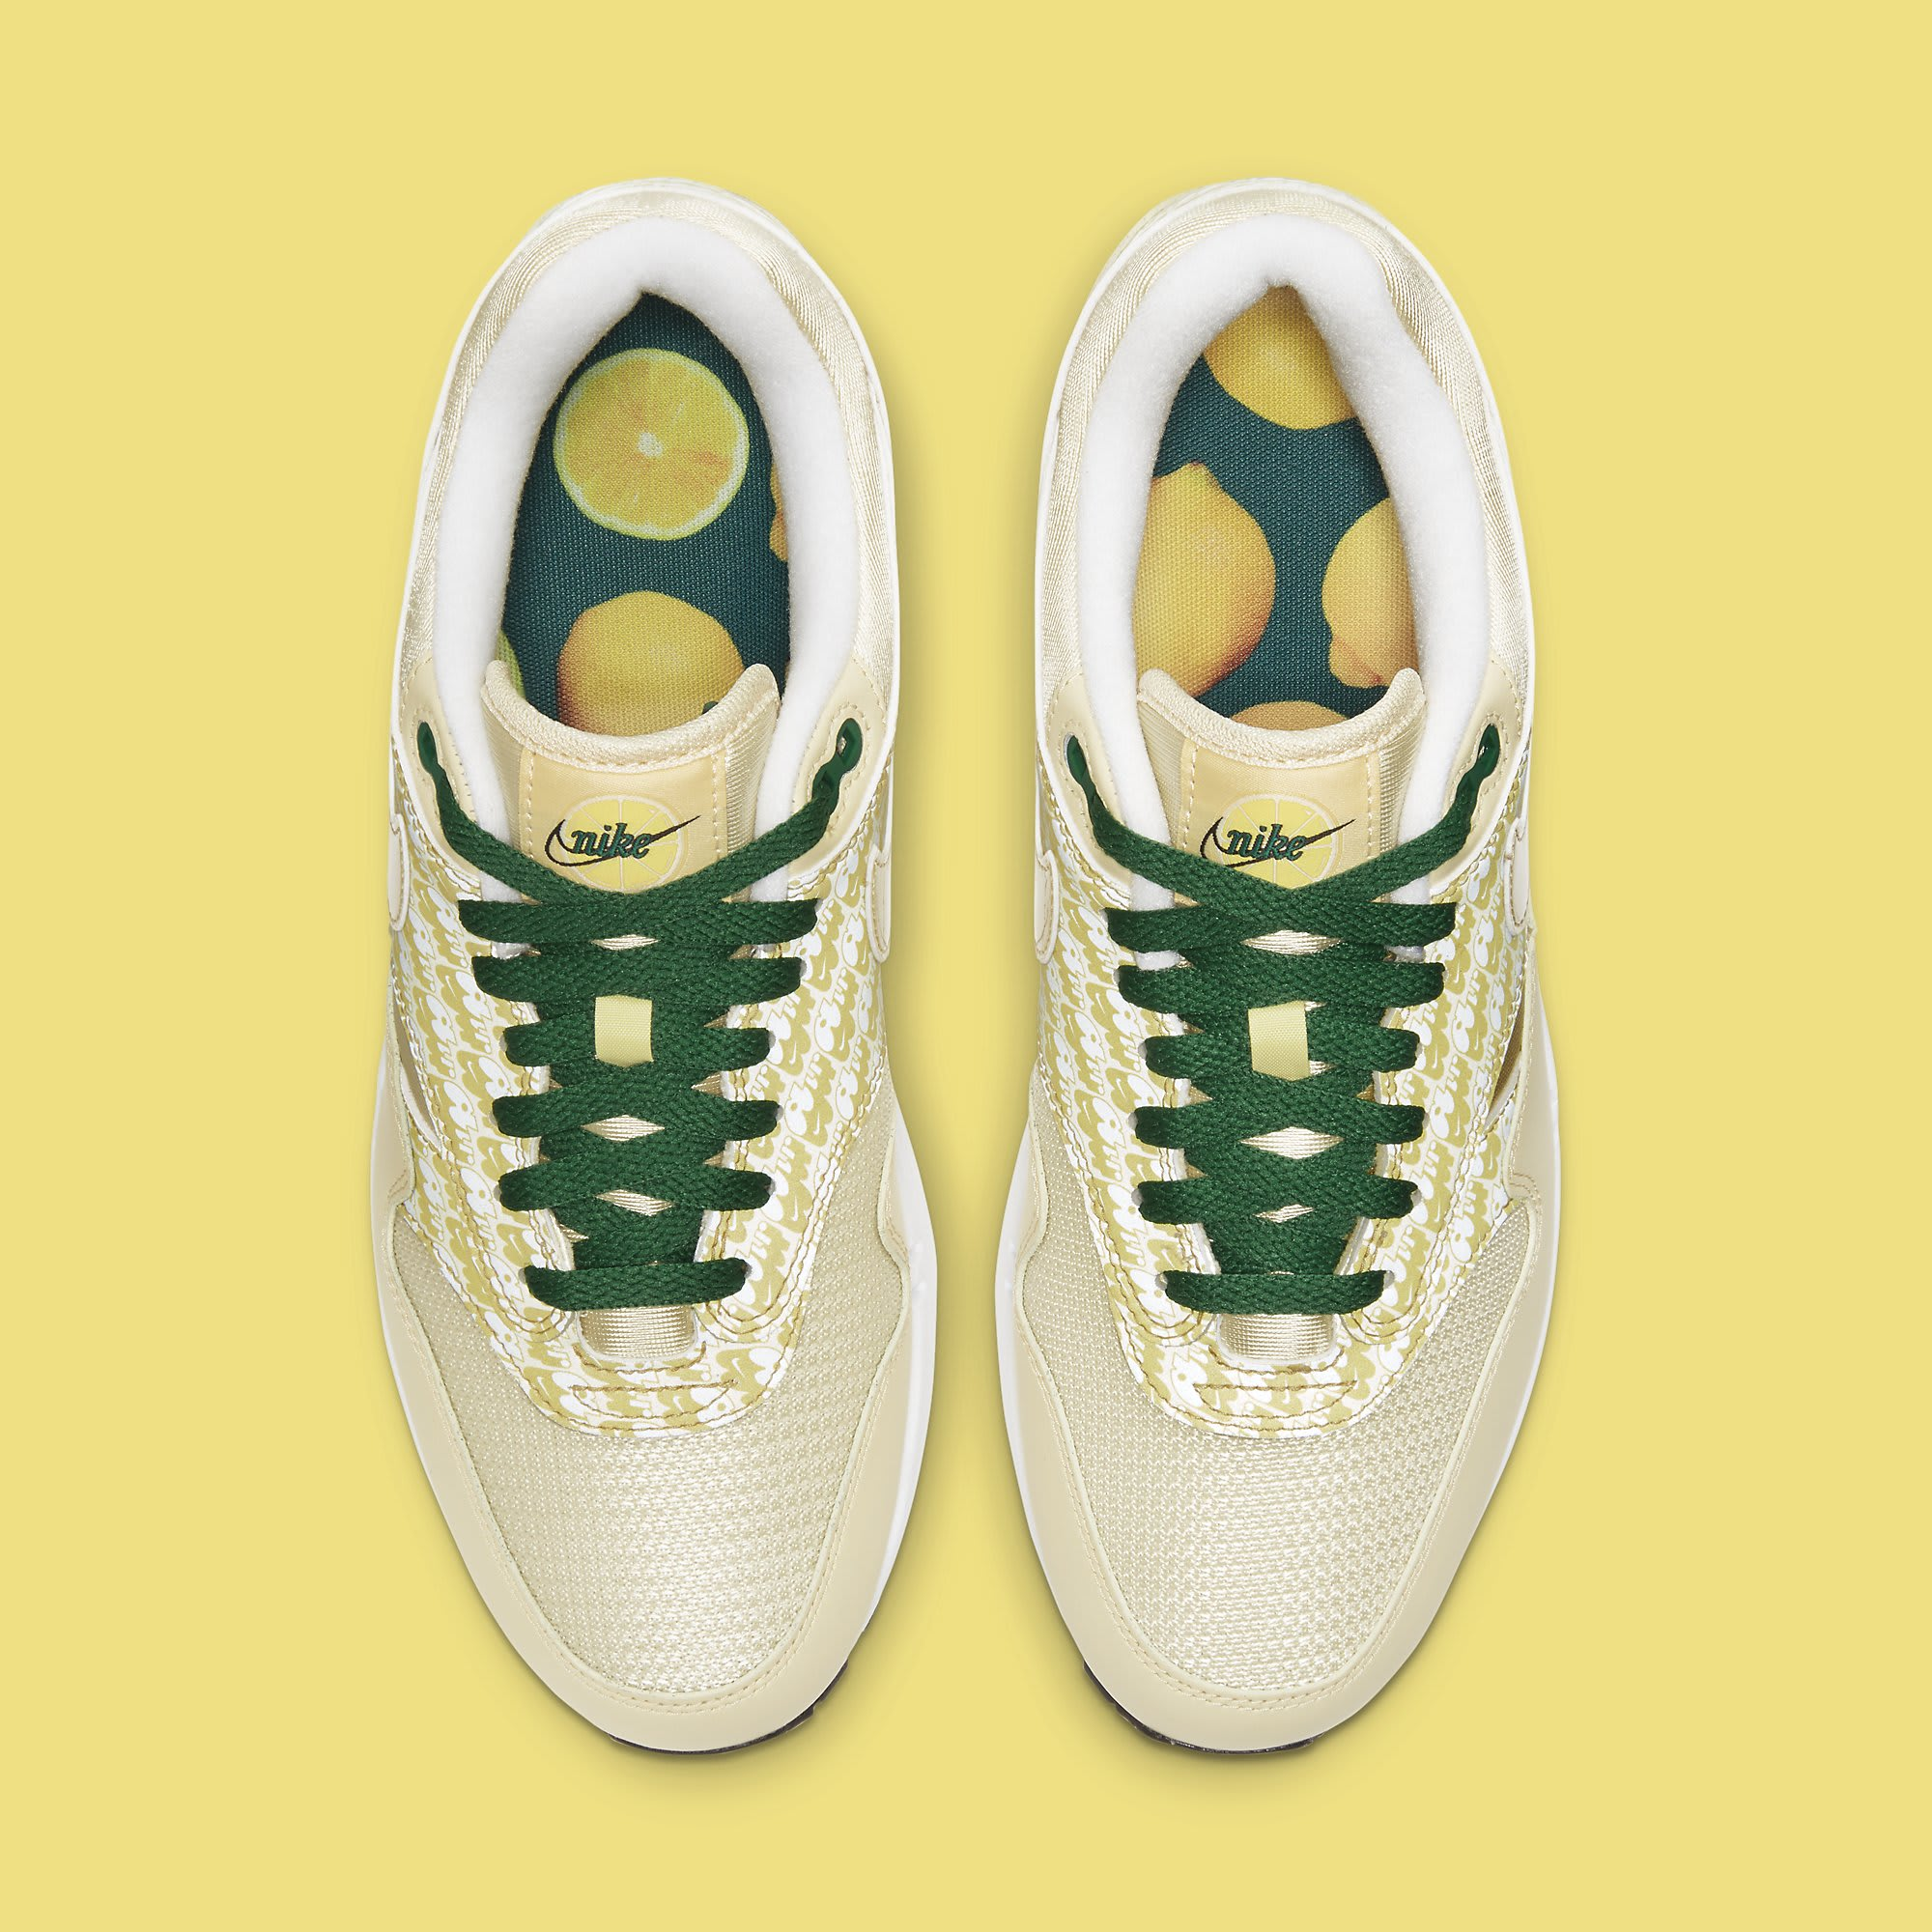 Nike Air Max 1 'Lemonade' CJ0609-700 Top